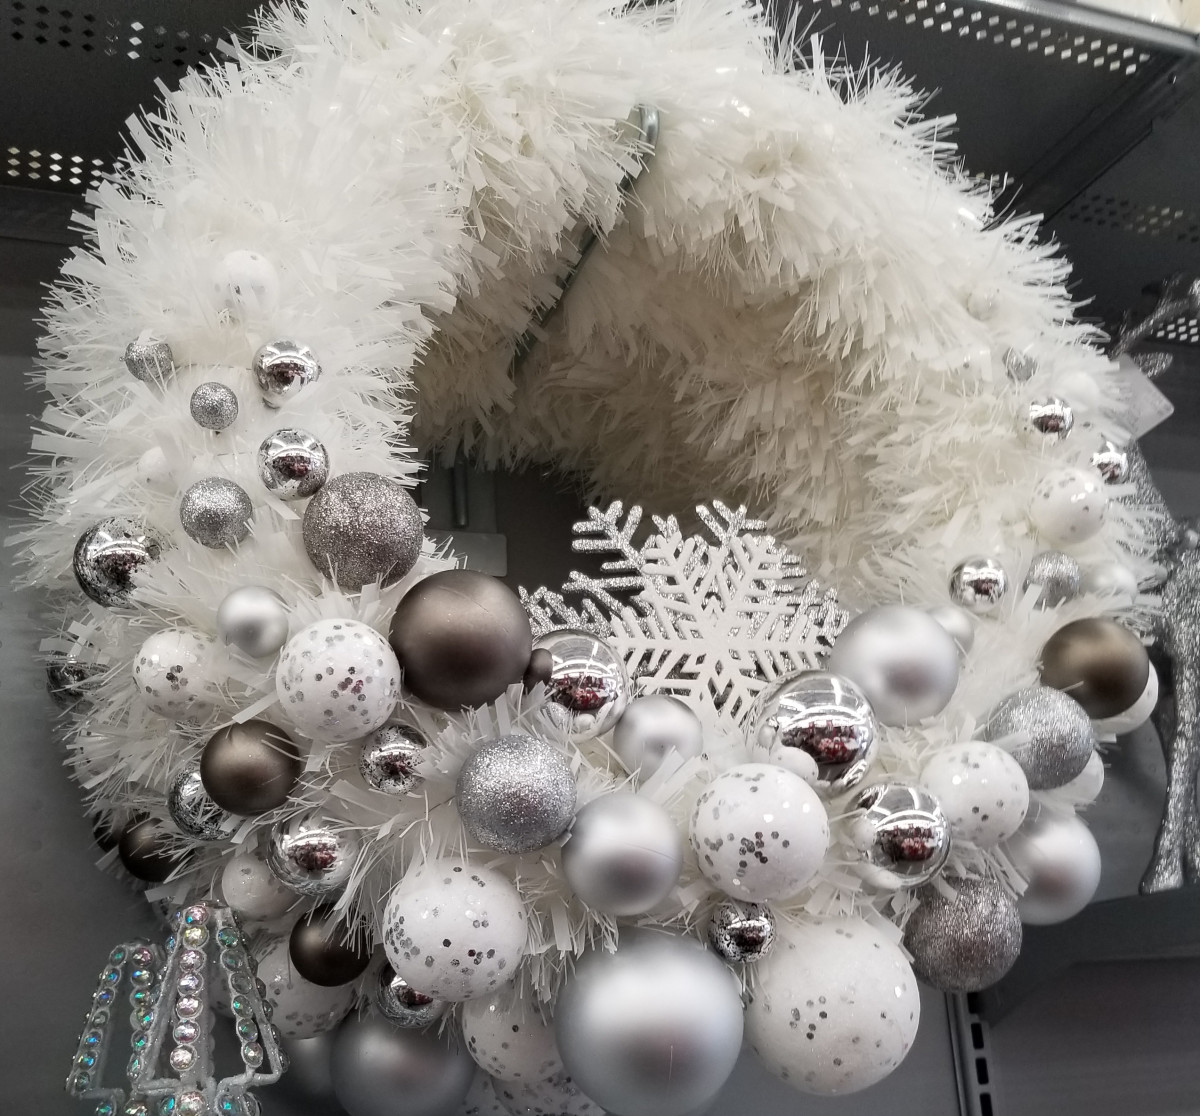 You can probably find a wreath to fit any budget or make your own. If you use one with artificial items, reuse it for years to come.